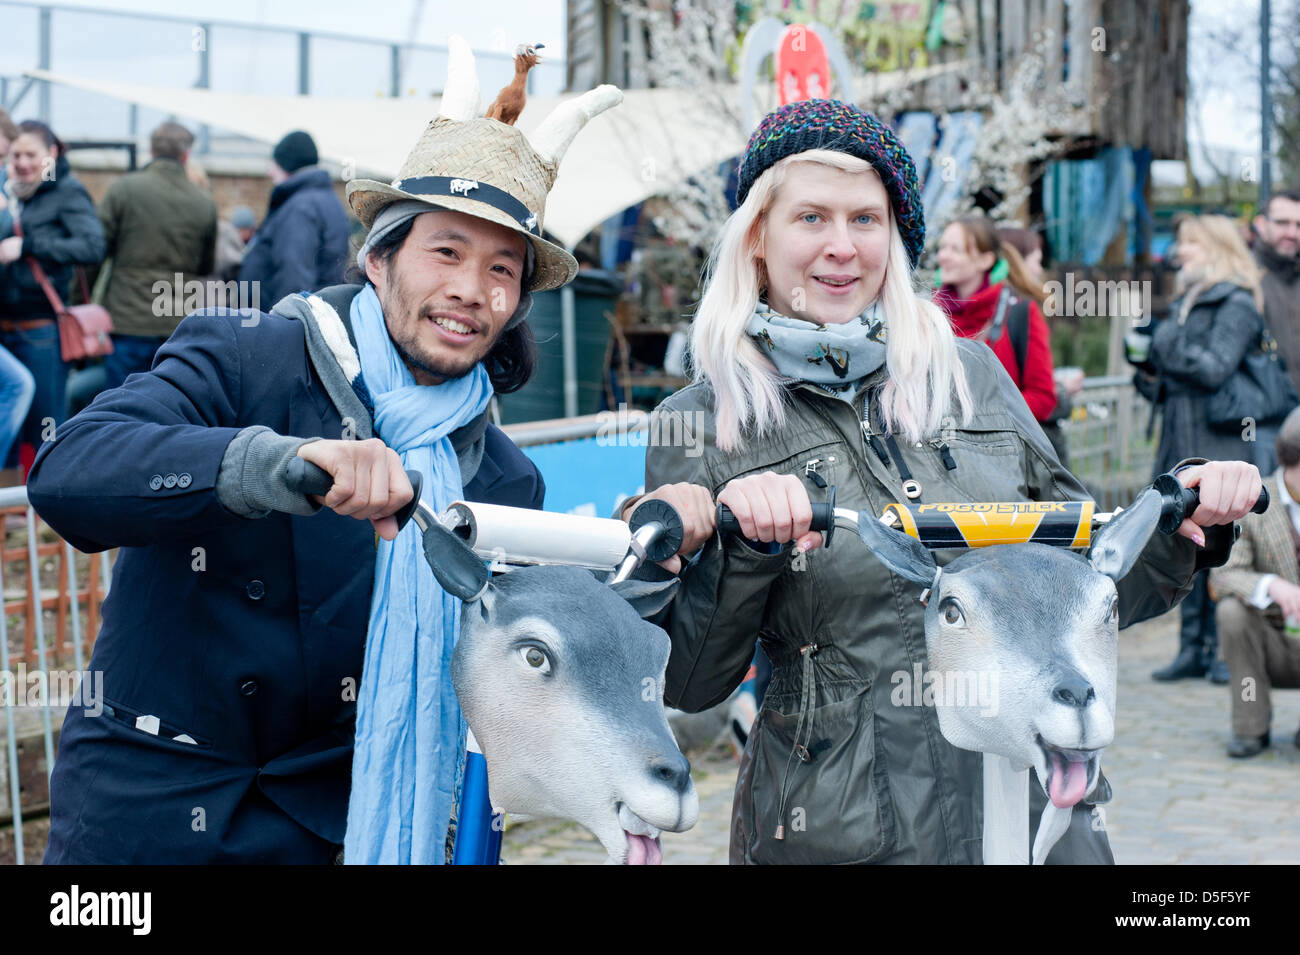 London, UK - 31 March 2013: people visit the 5th Annual Oxford and Cambridge Goat Race that takes place at Spitalfields - Stock Image